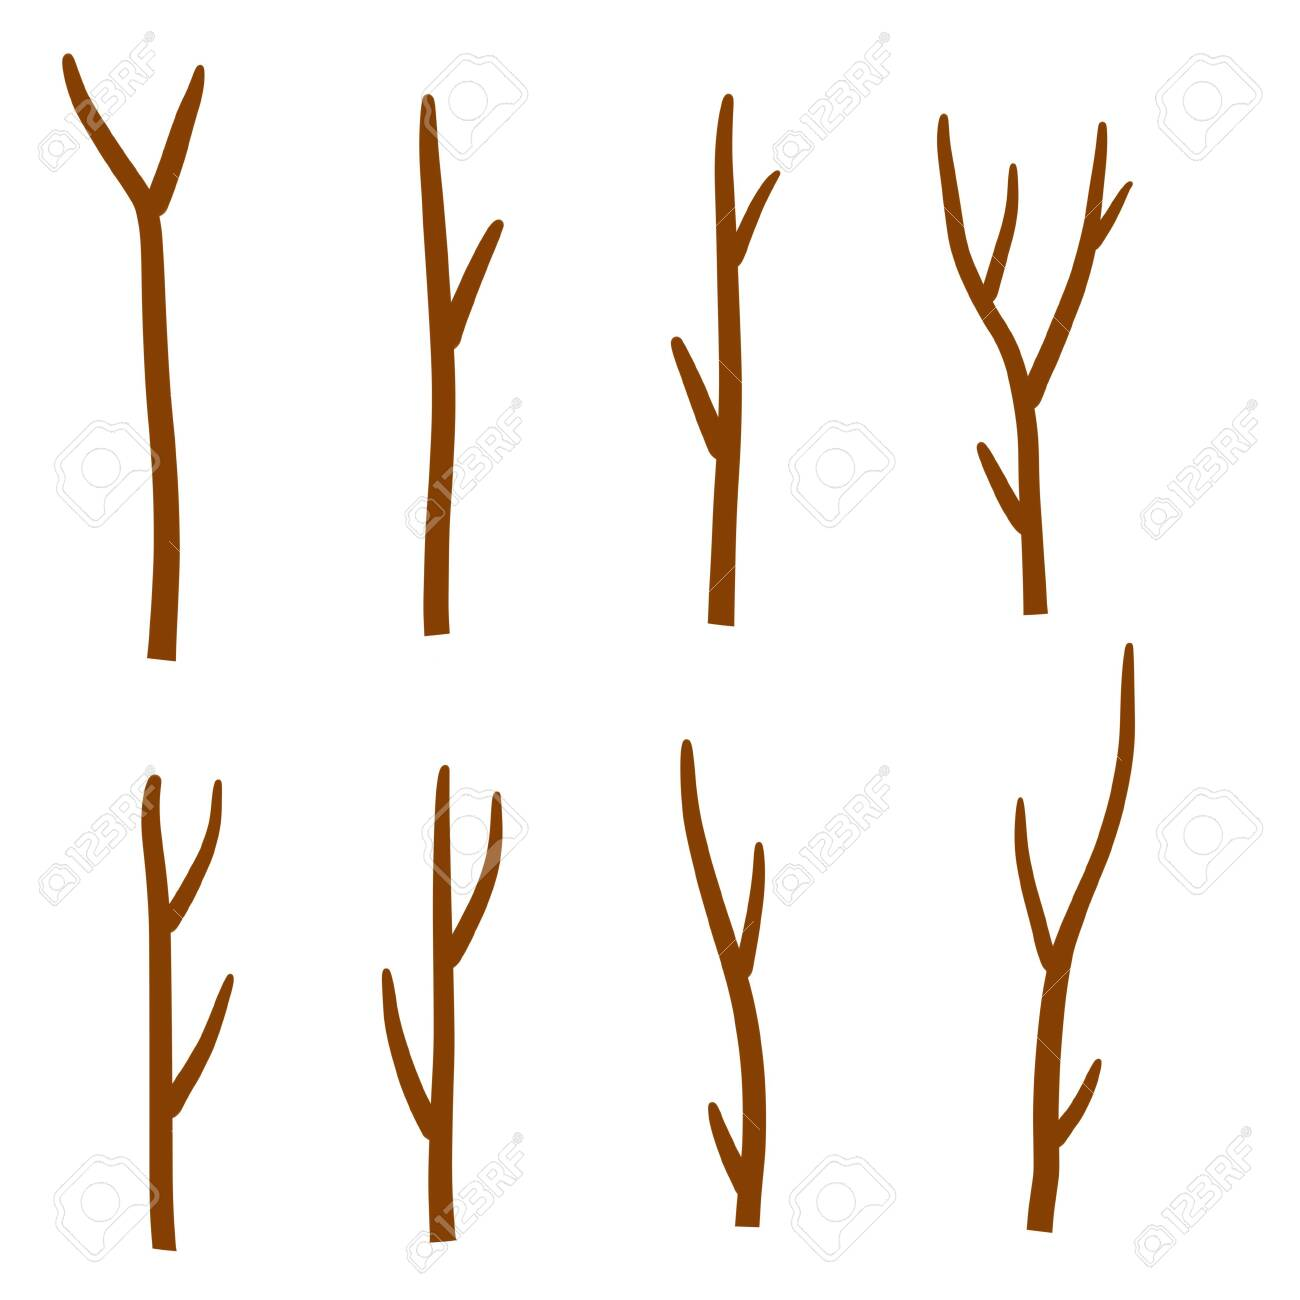 Tree branch. Set of different brown sticks. Cartoon flat illustration. Element of nature, forest or Park isolated on white - 151597981